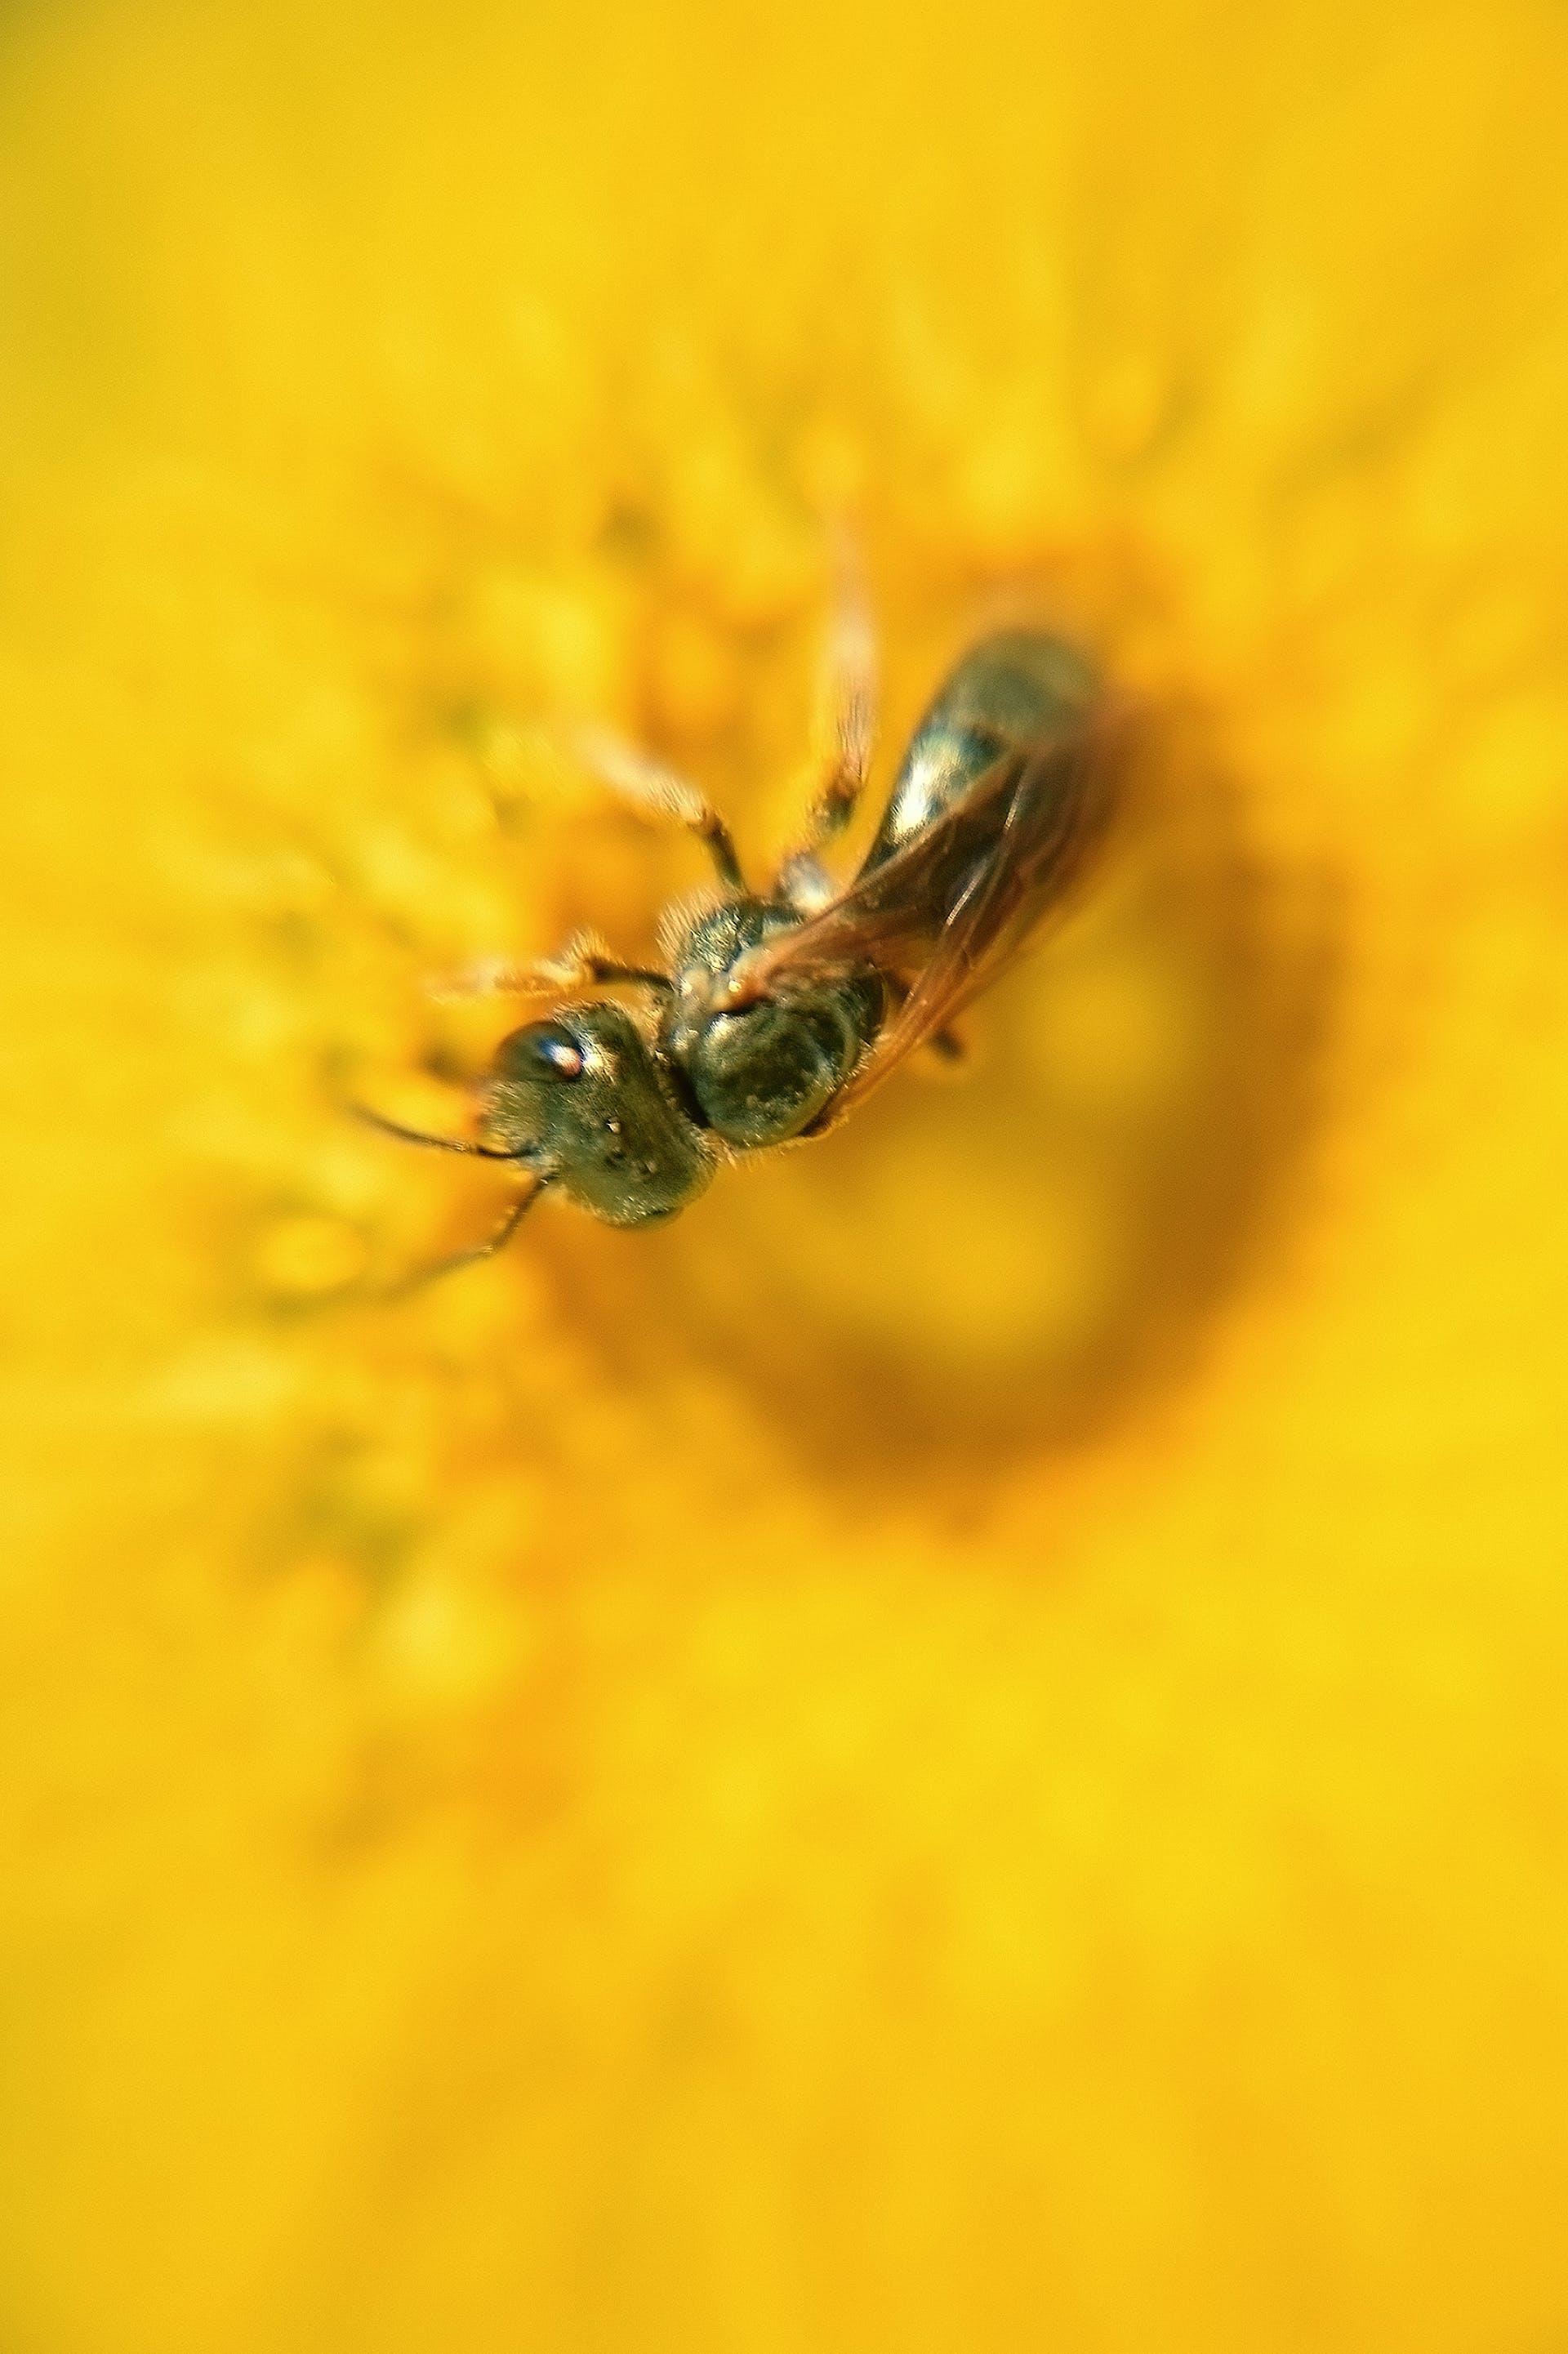 Macro Photo of Black Wasp Perched on Yellow Flower